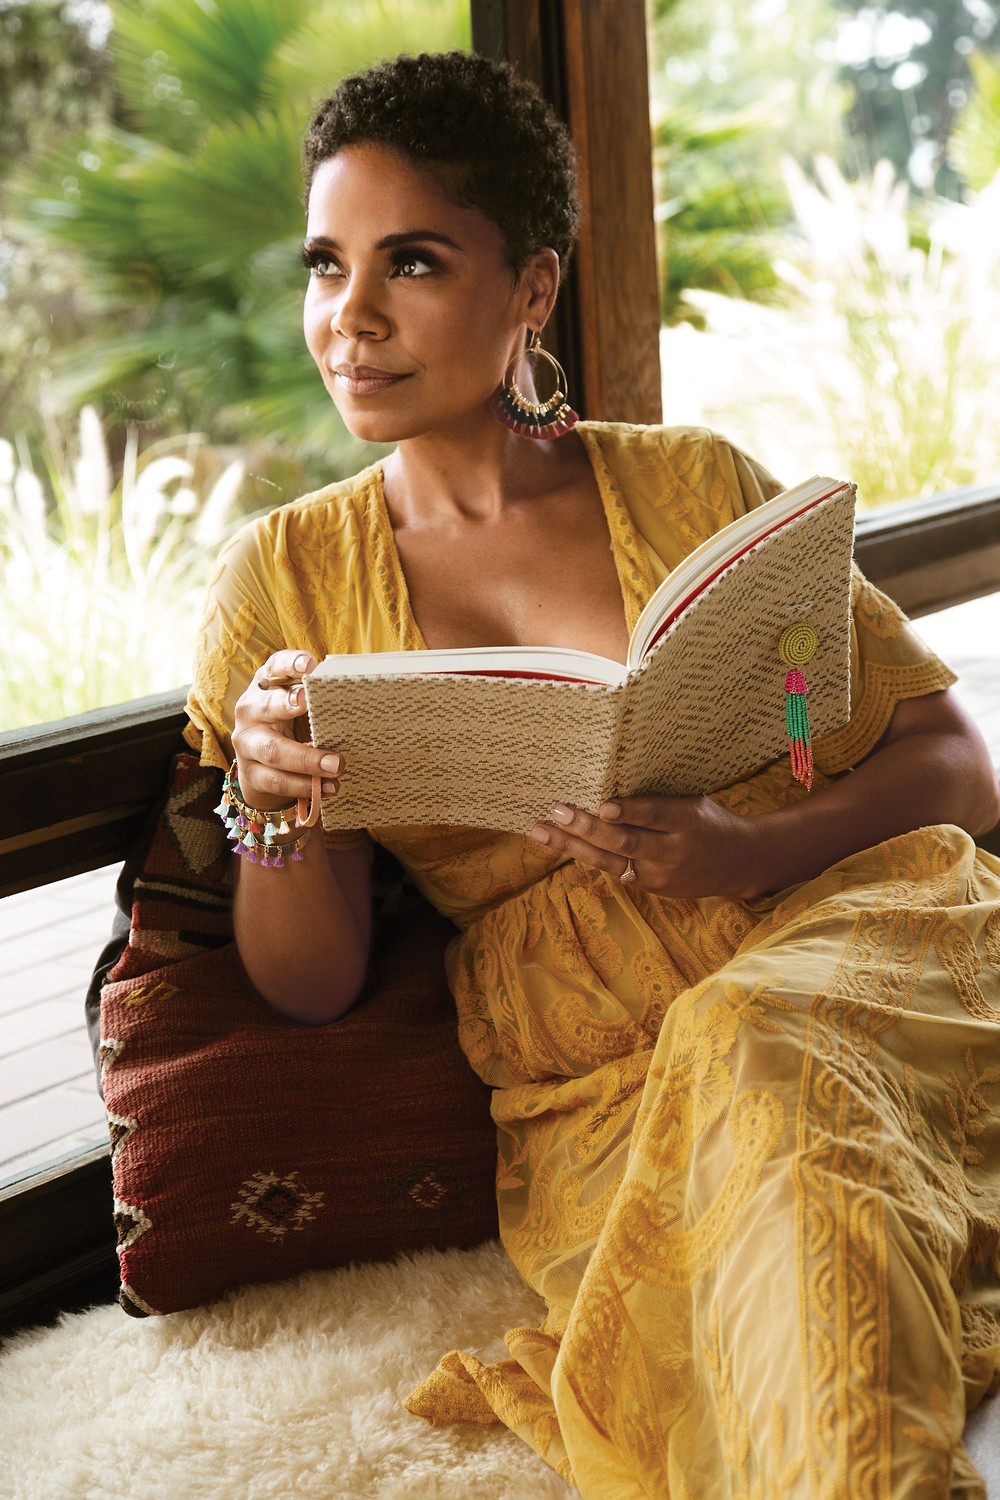 Sanaa Lathan reflecting on a book she's reading.